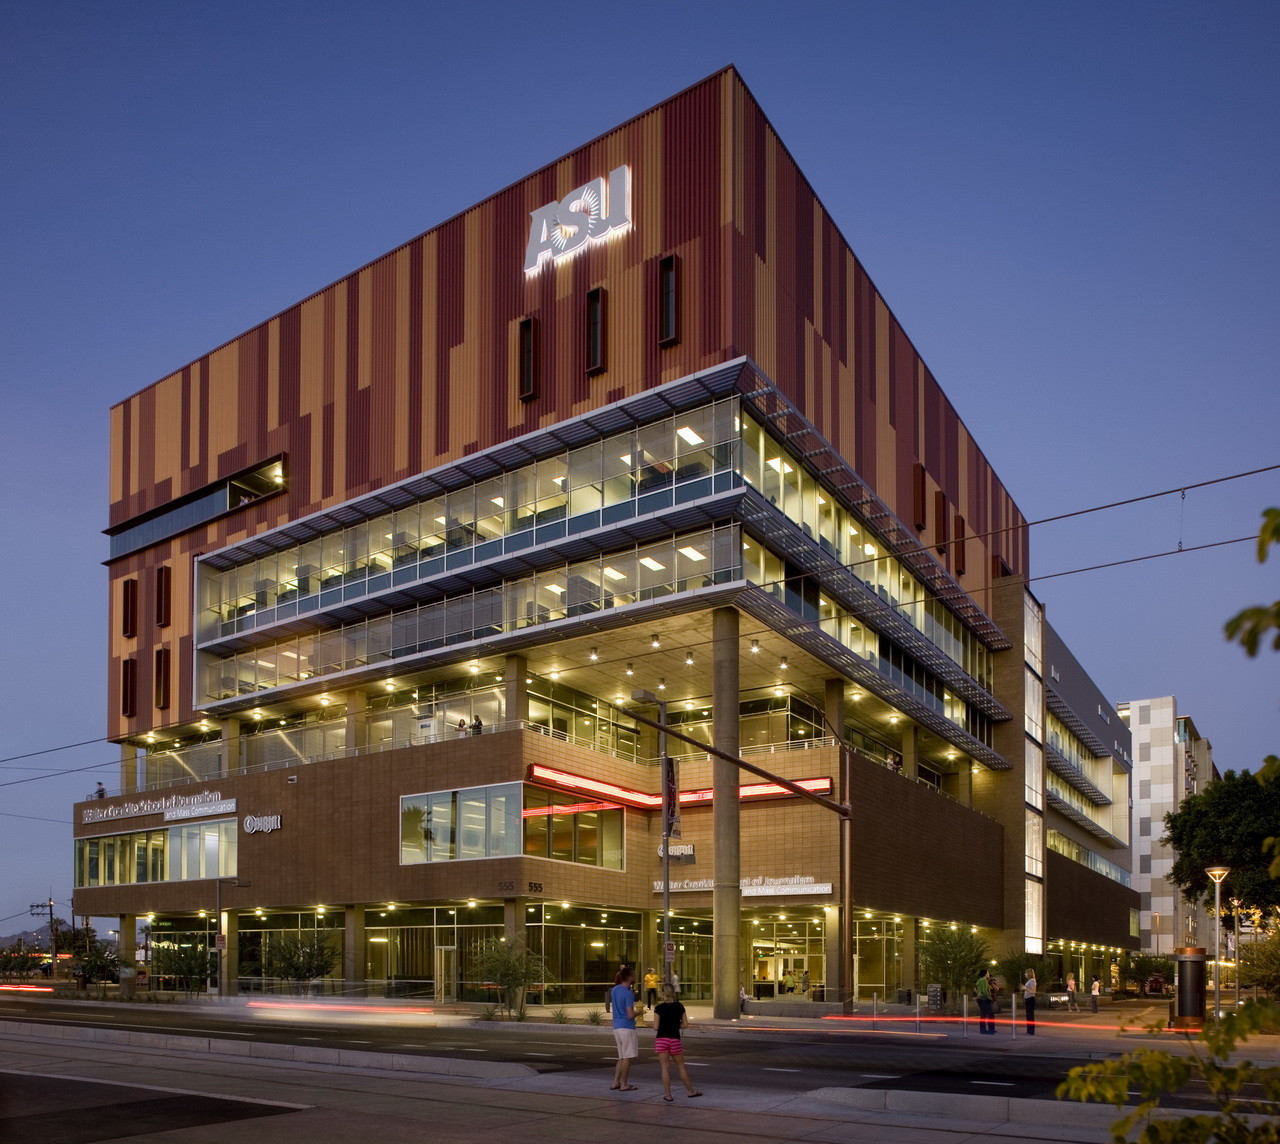 Ehrlich Architects Win 2015 AIA Architecture Firm Award, Arizona State University Walter Cronkite School of Journalism & Mass Communication / Ehrlich Architects © Bill Timmerman